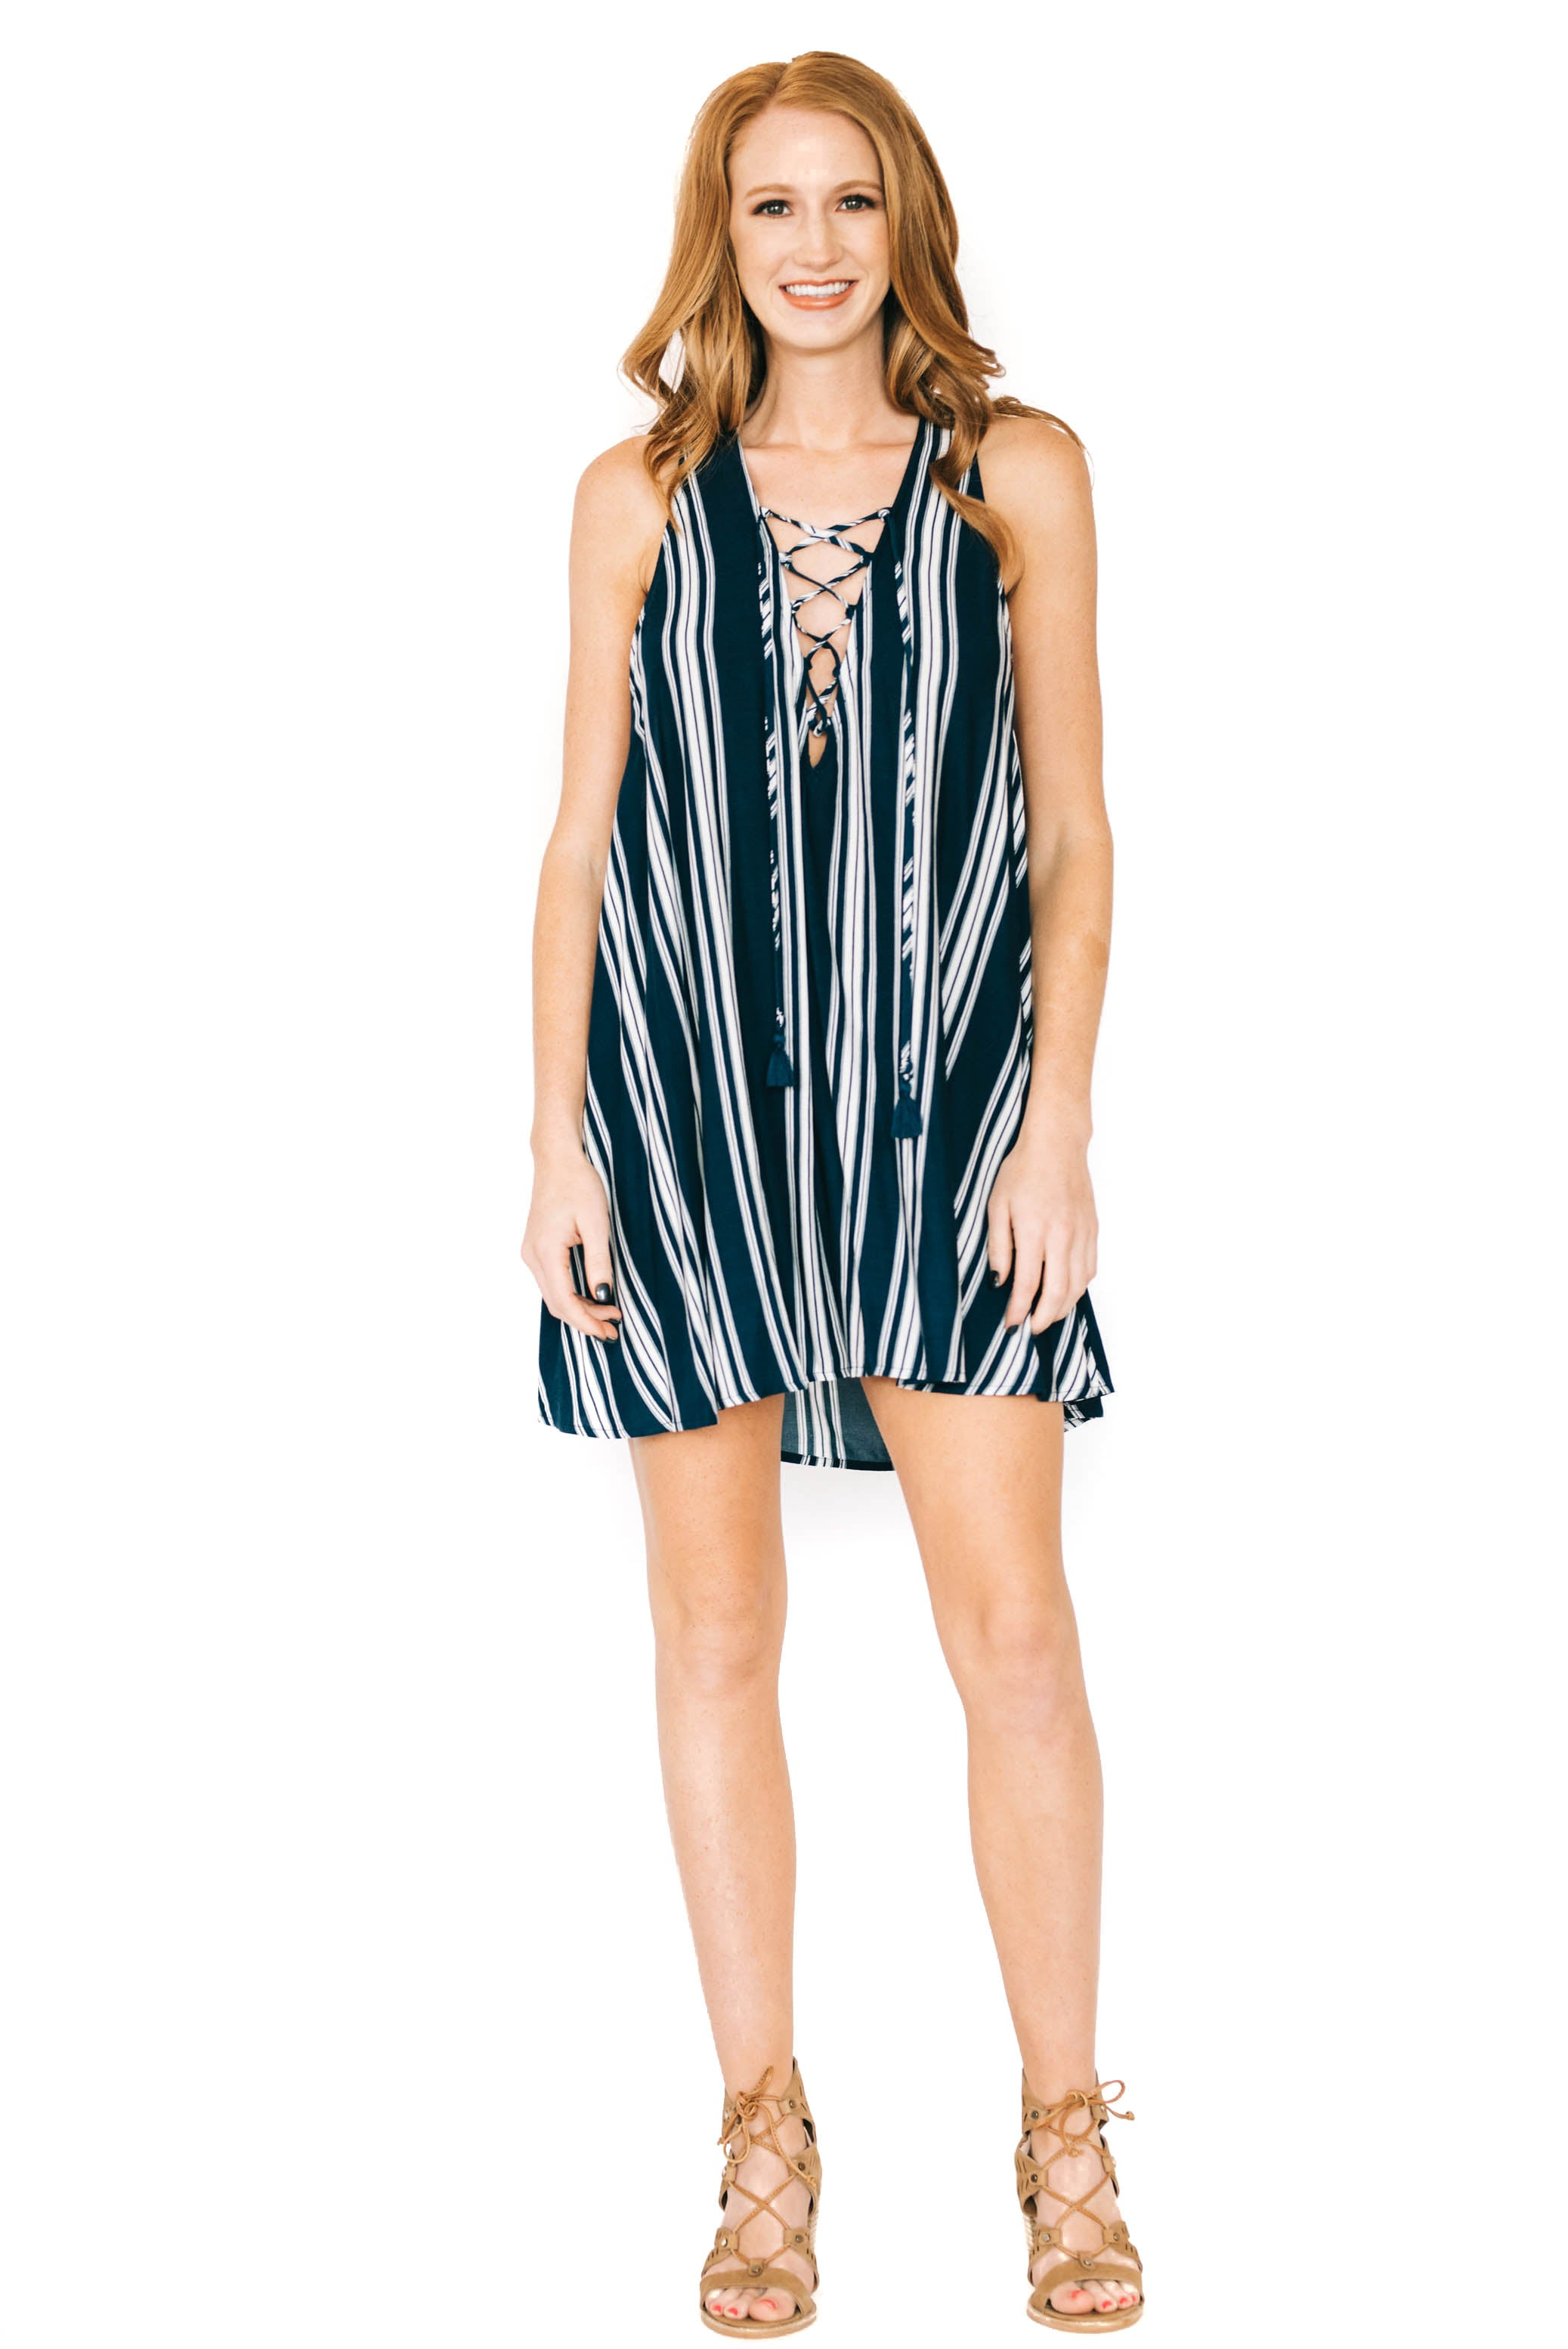 Stripe Breeze Rancho Mirage Lace Up Dress